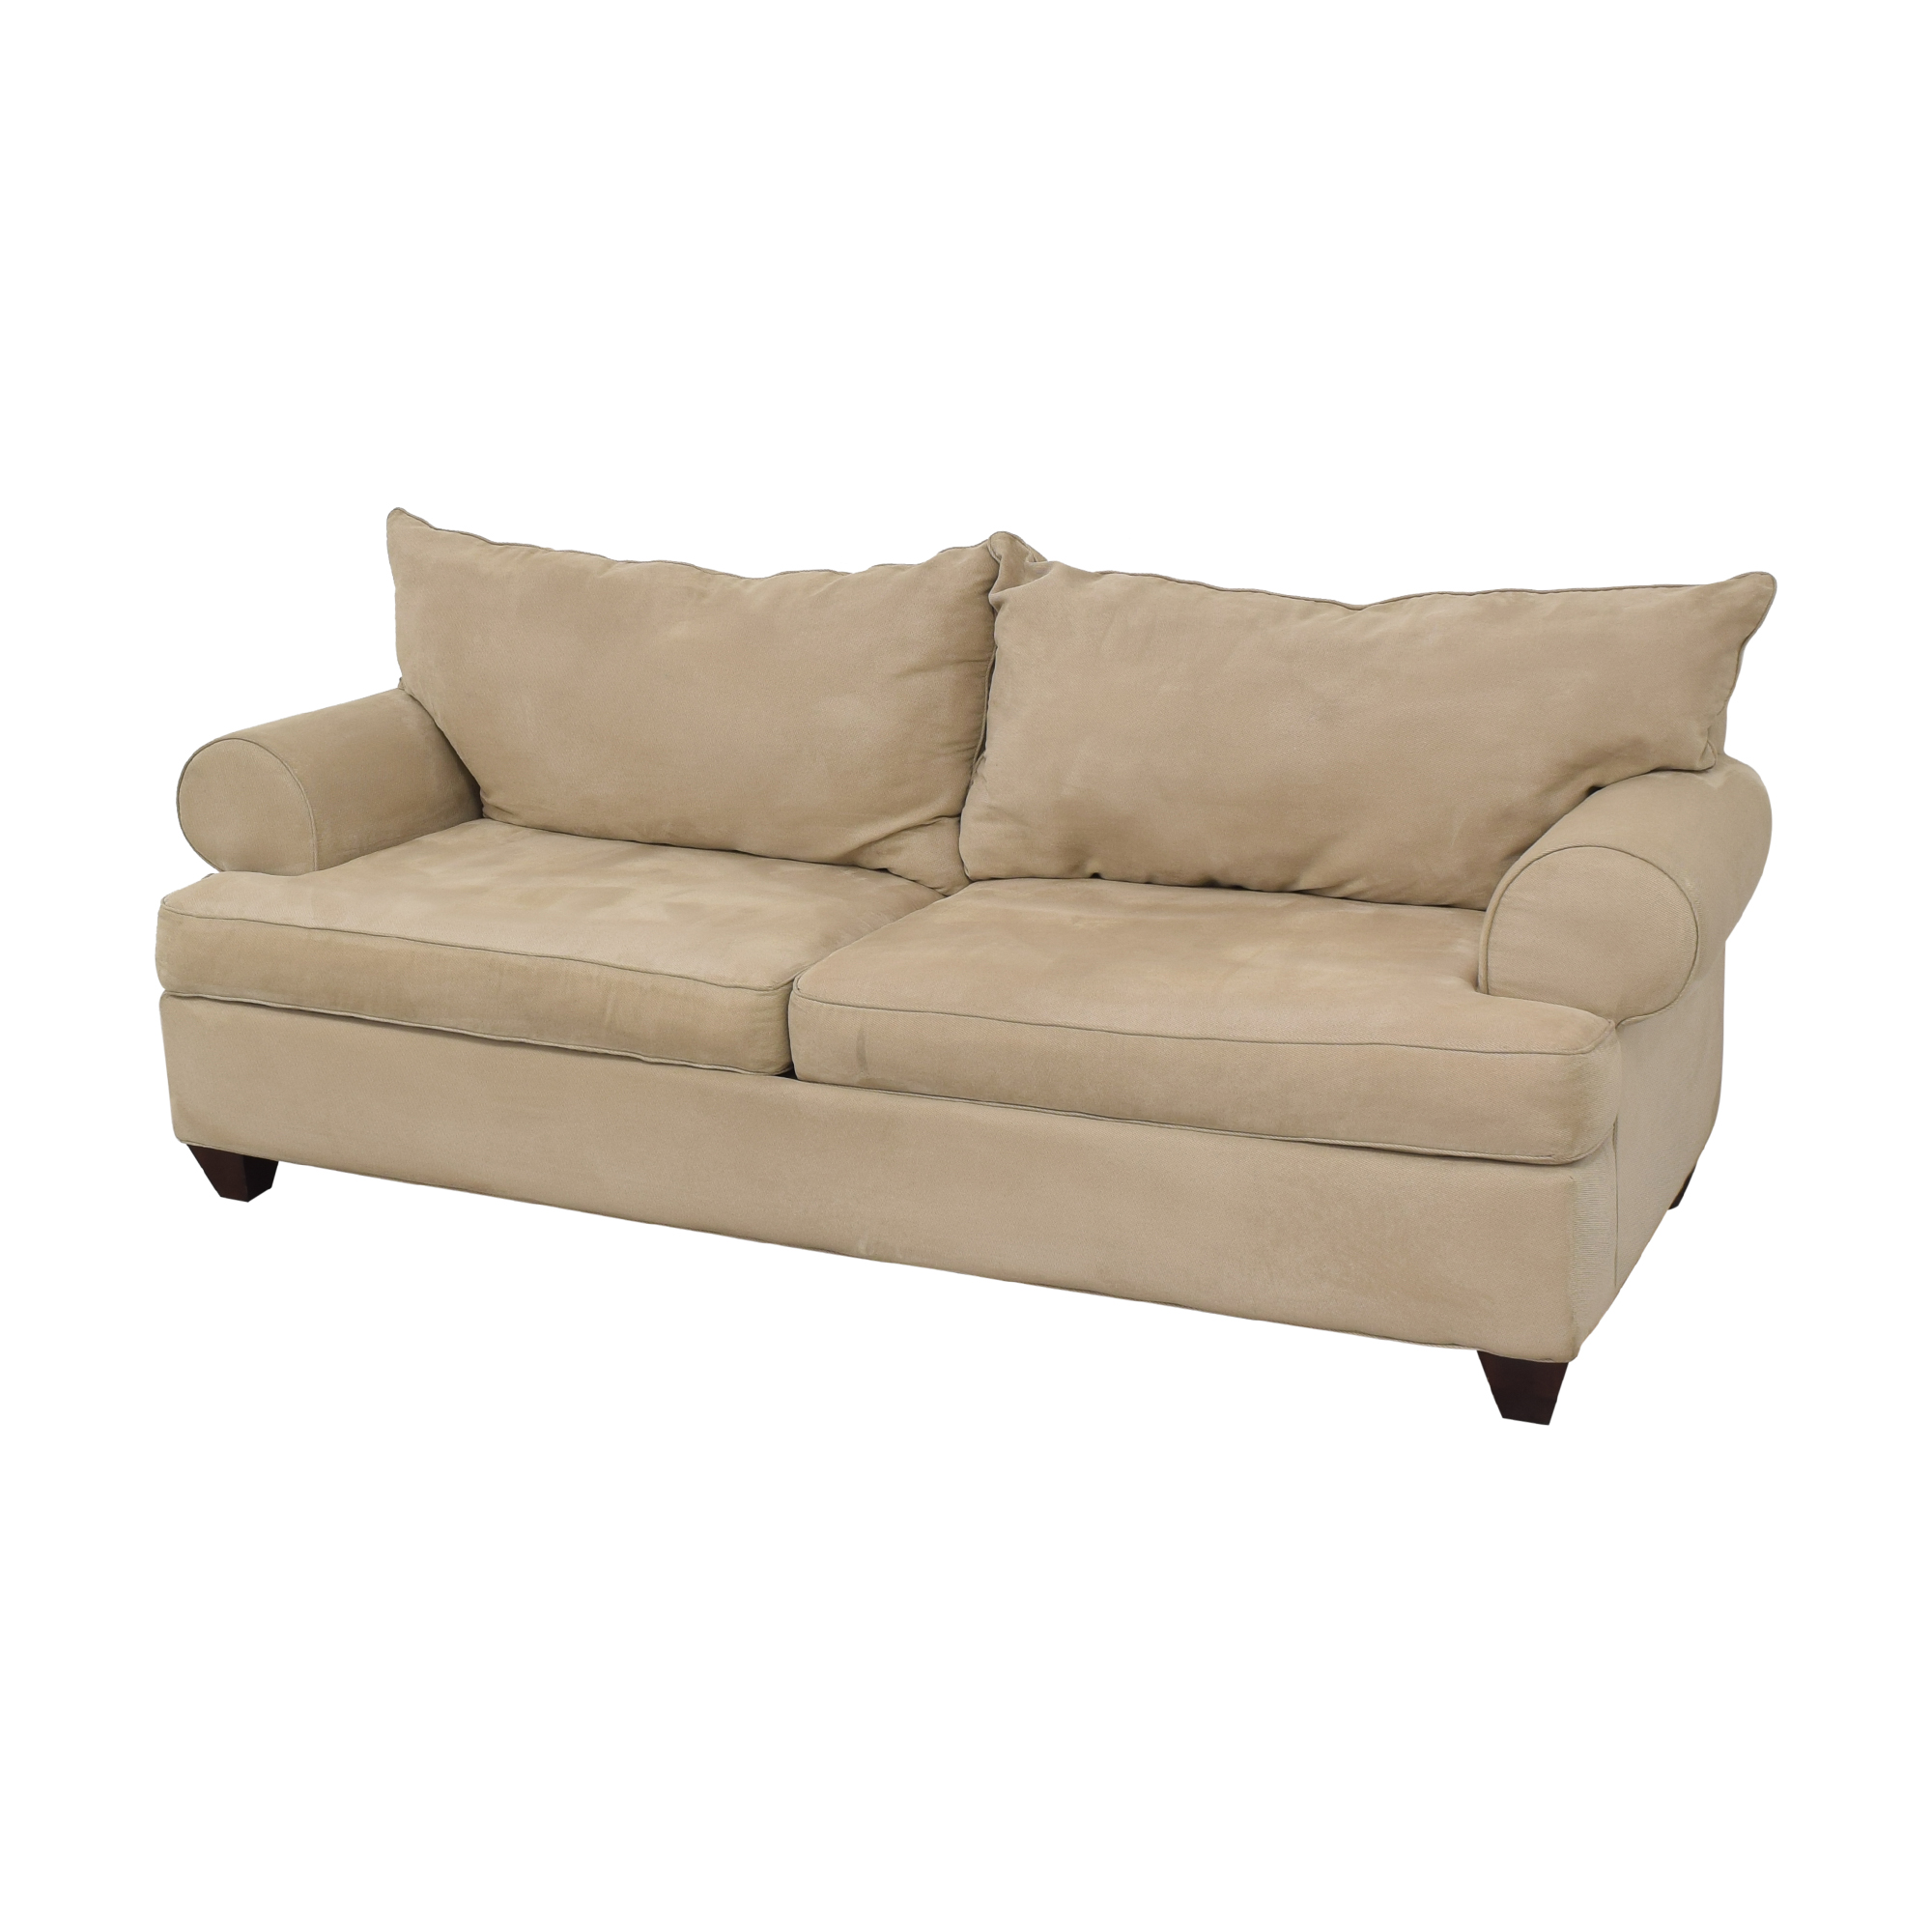 Raymour & Flanigan Two Cushion Sofa / Sofas